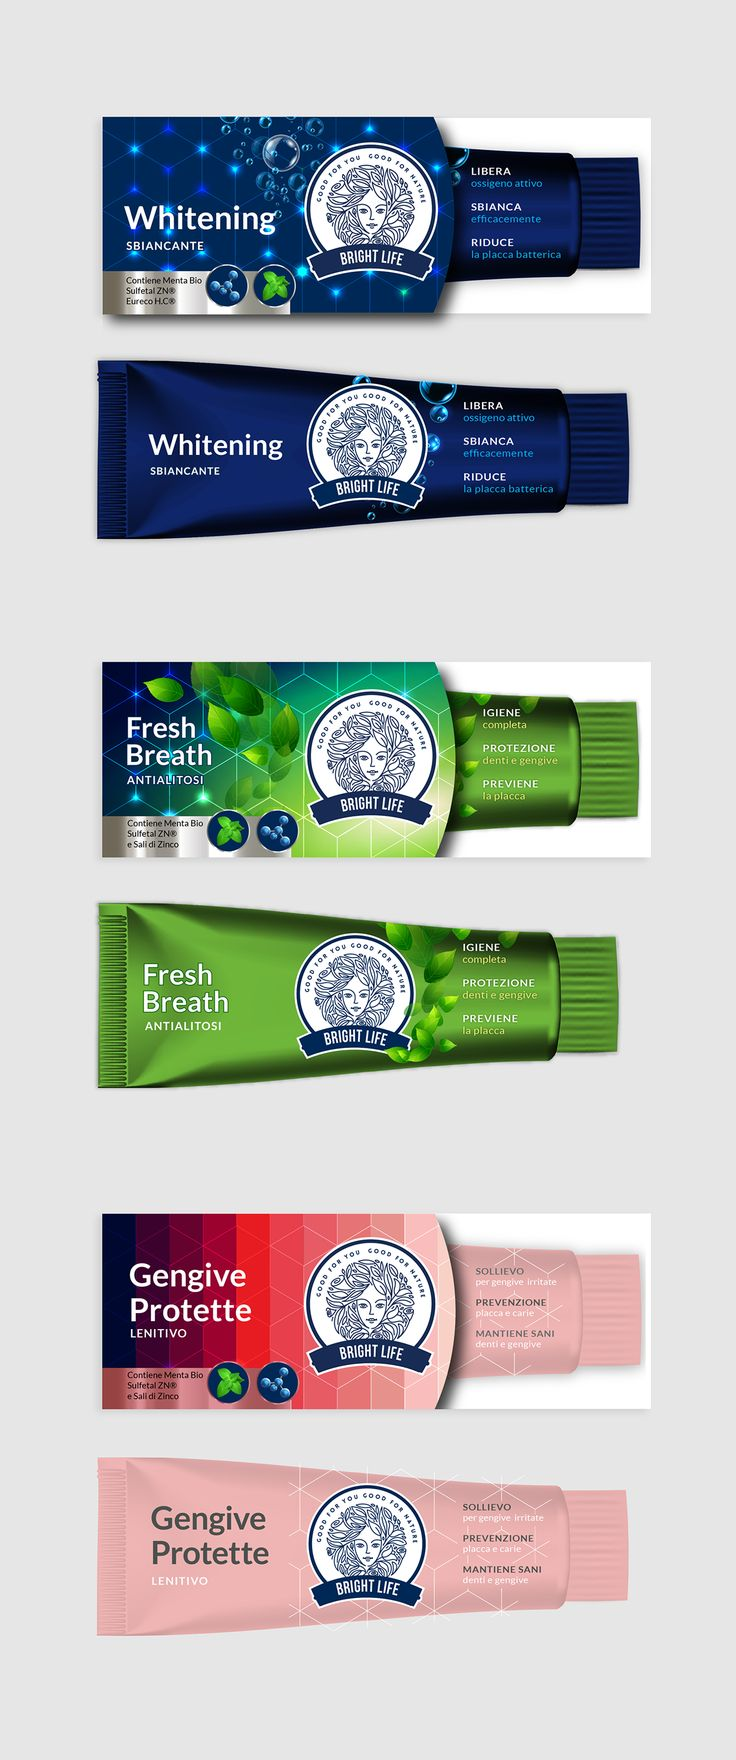 Toothpaste on Behance - toothpaste, dentifrico, #dentifricio, packaging, confezione